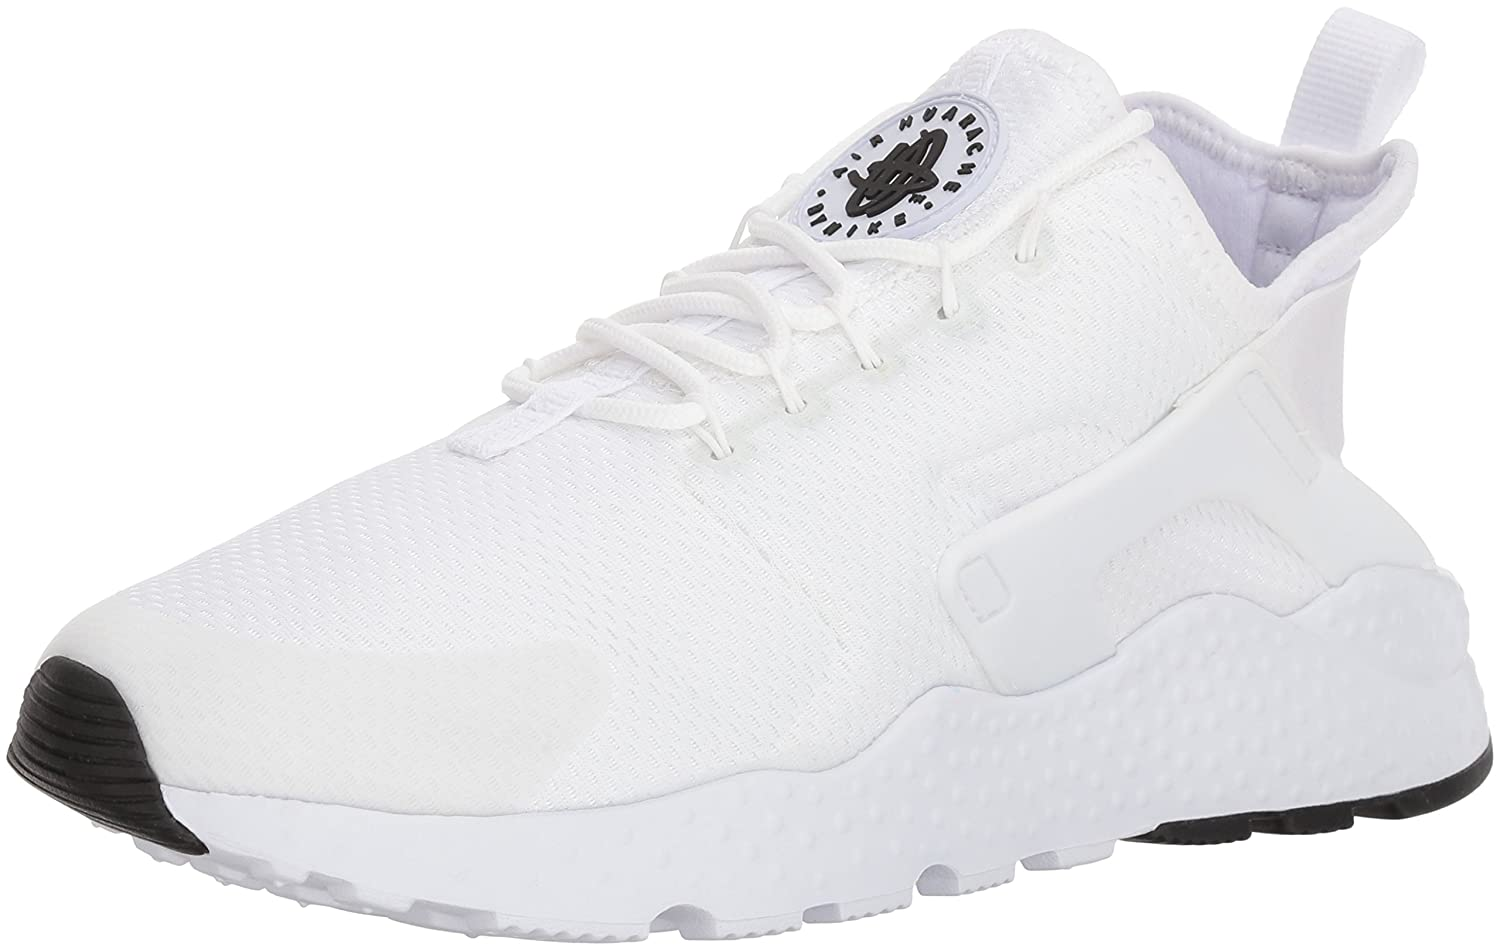 NIKE Women's Air Huarache Run Ultra Running Shoe B01N30MY5P 10 B(M) US|White / White-white-black